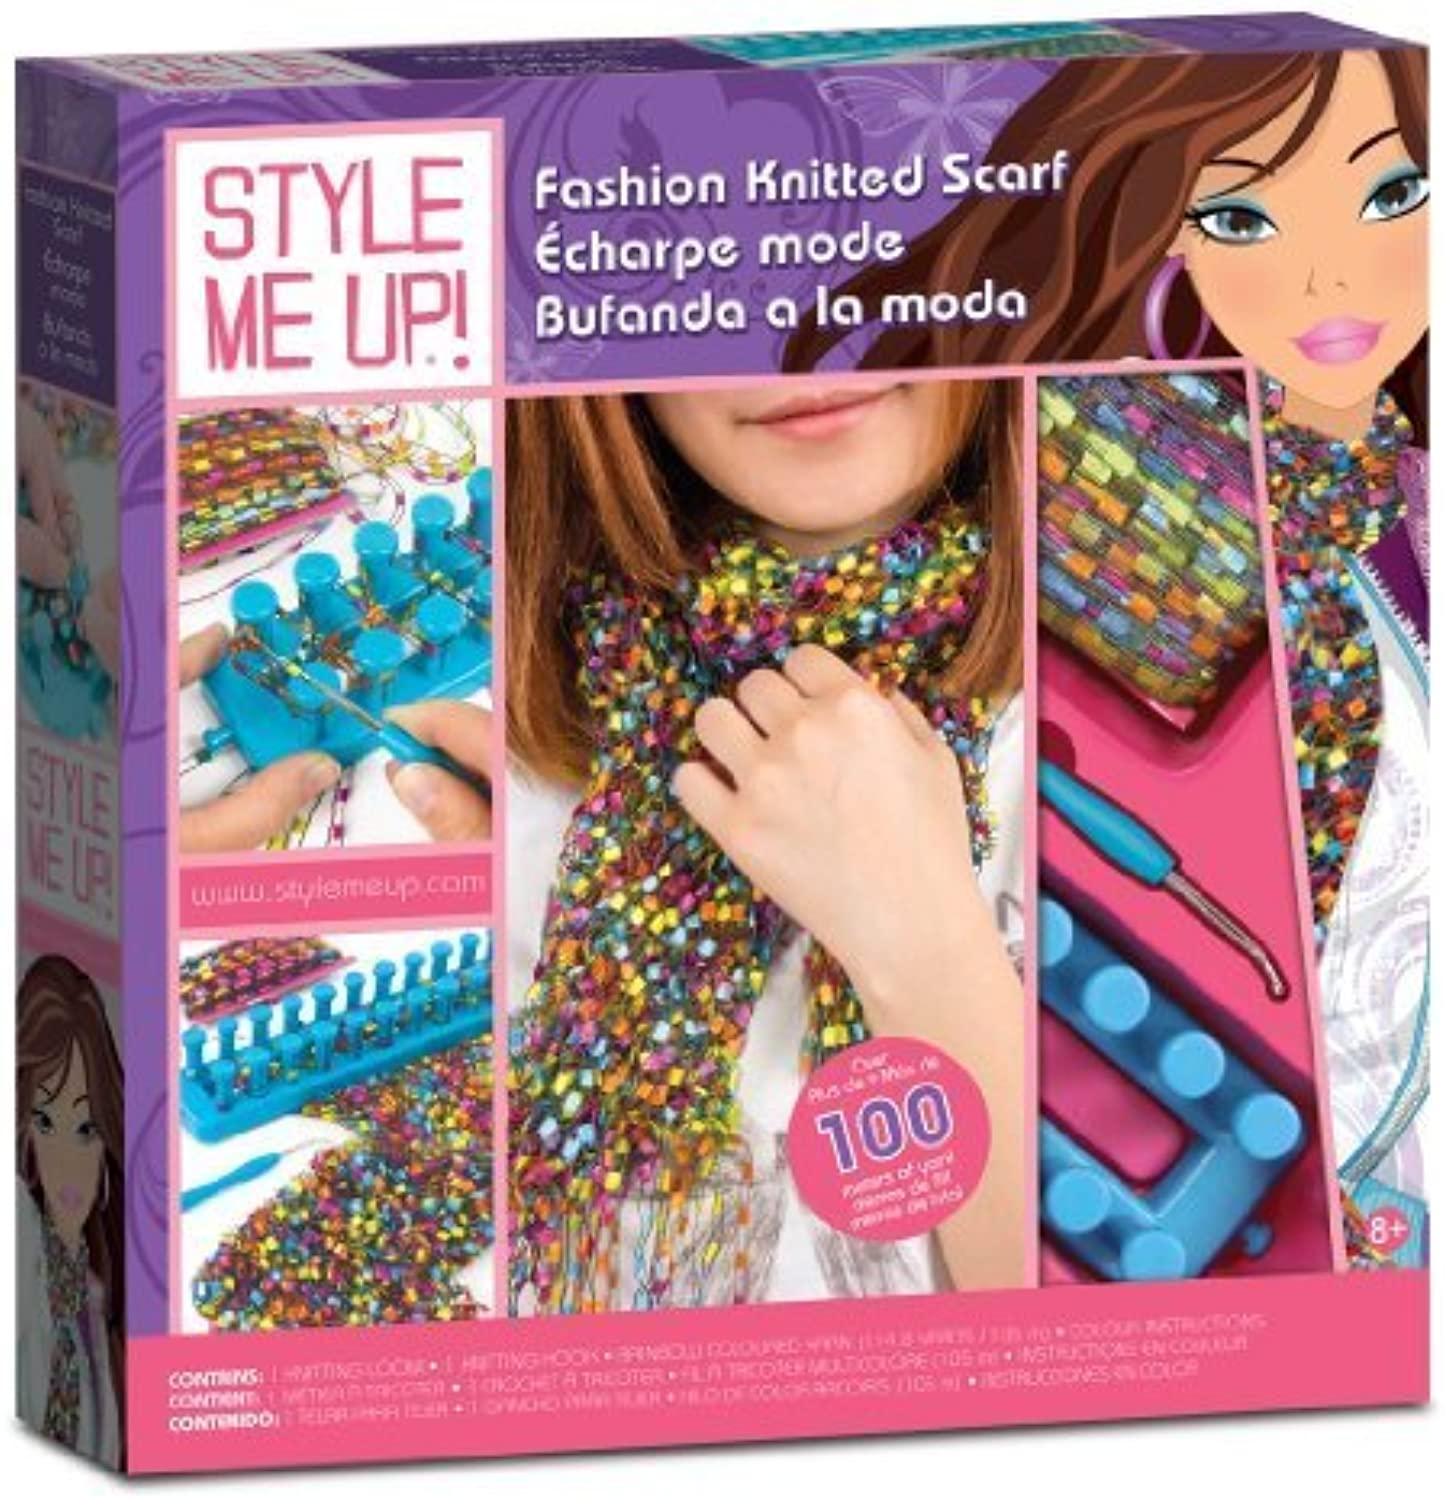 Style Me Up Fashion Knitted Scarf by Style Me Up  [Toy]